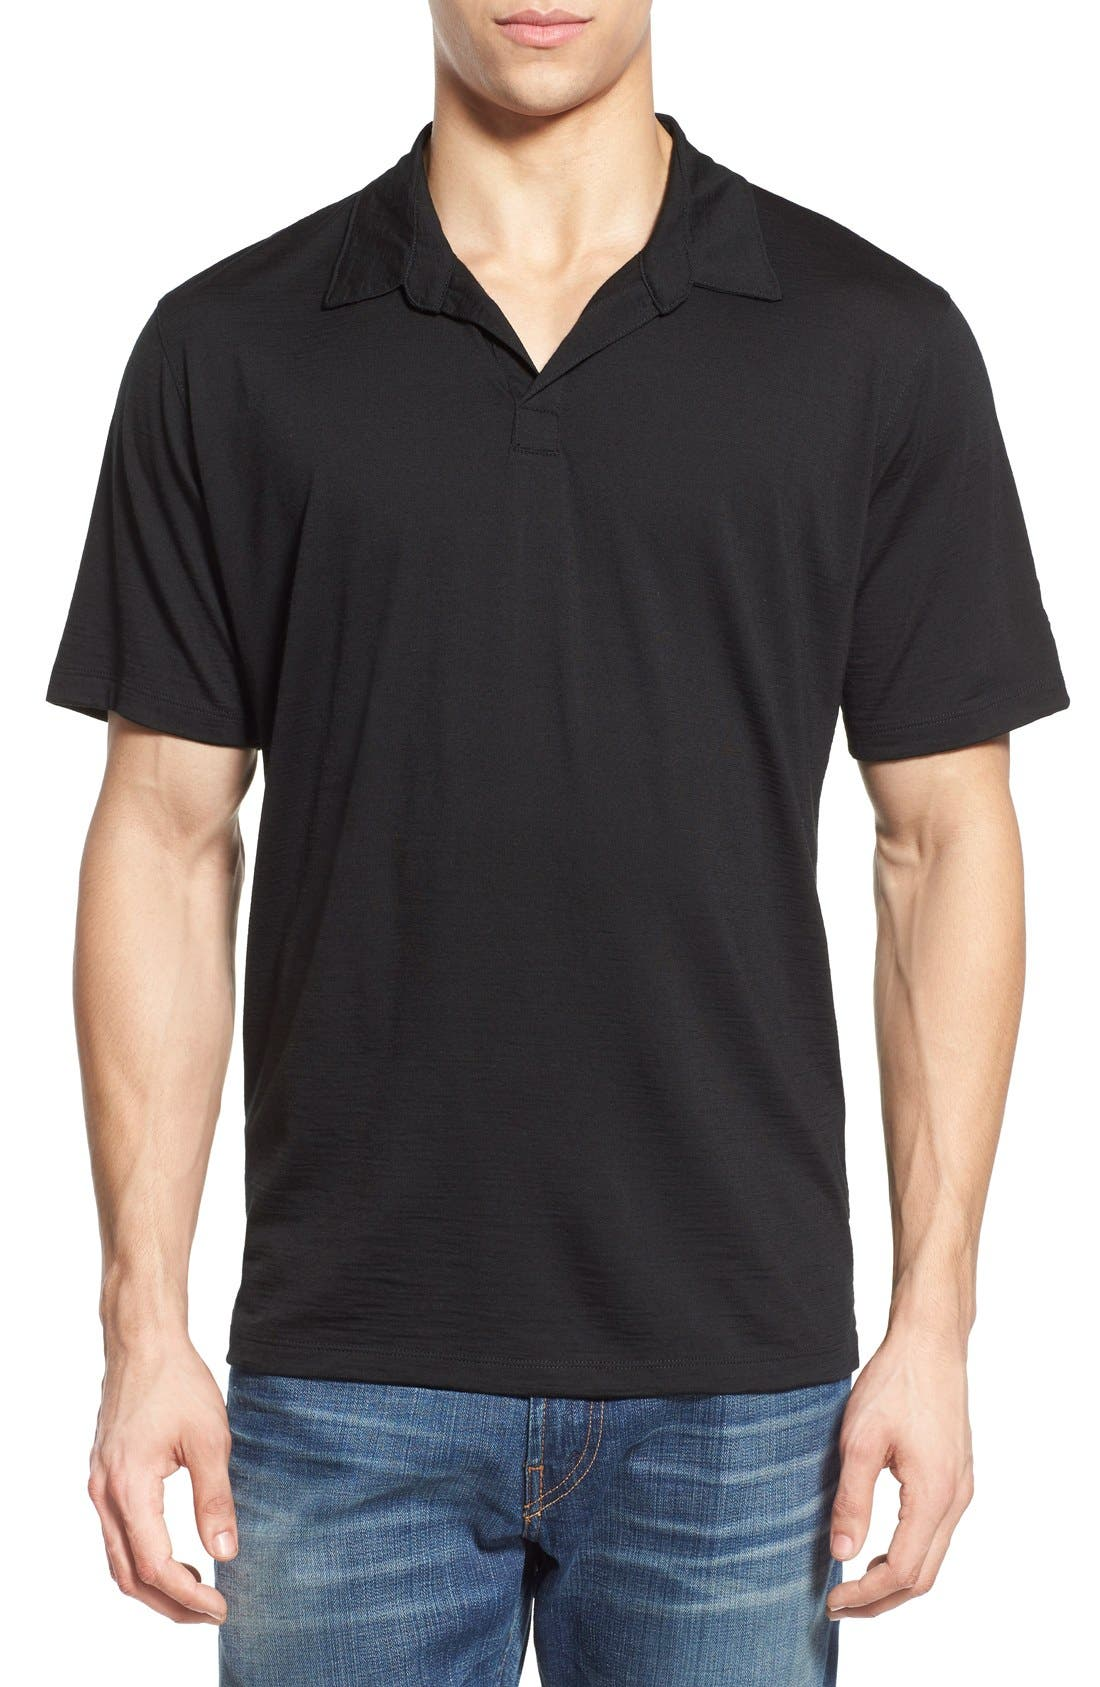 'Cirrus' Merino Wool Jersey Polo,                             Main thumbnail 1, color,                             001